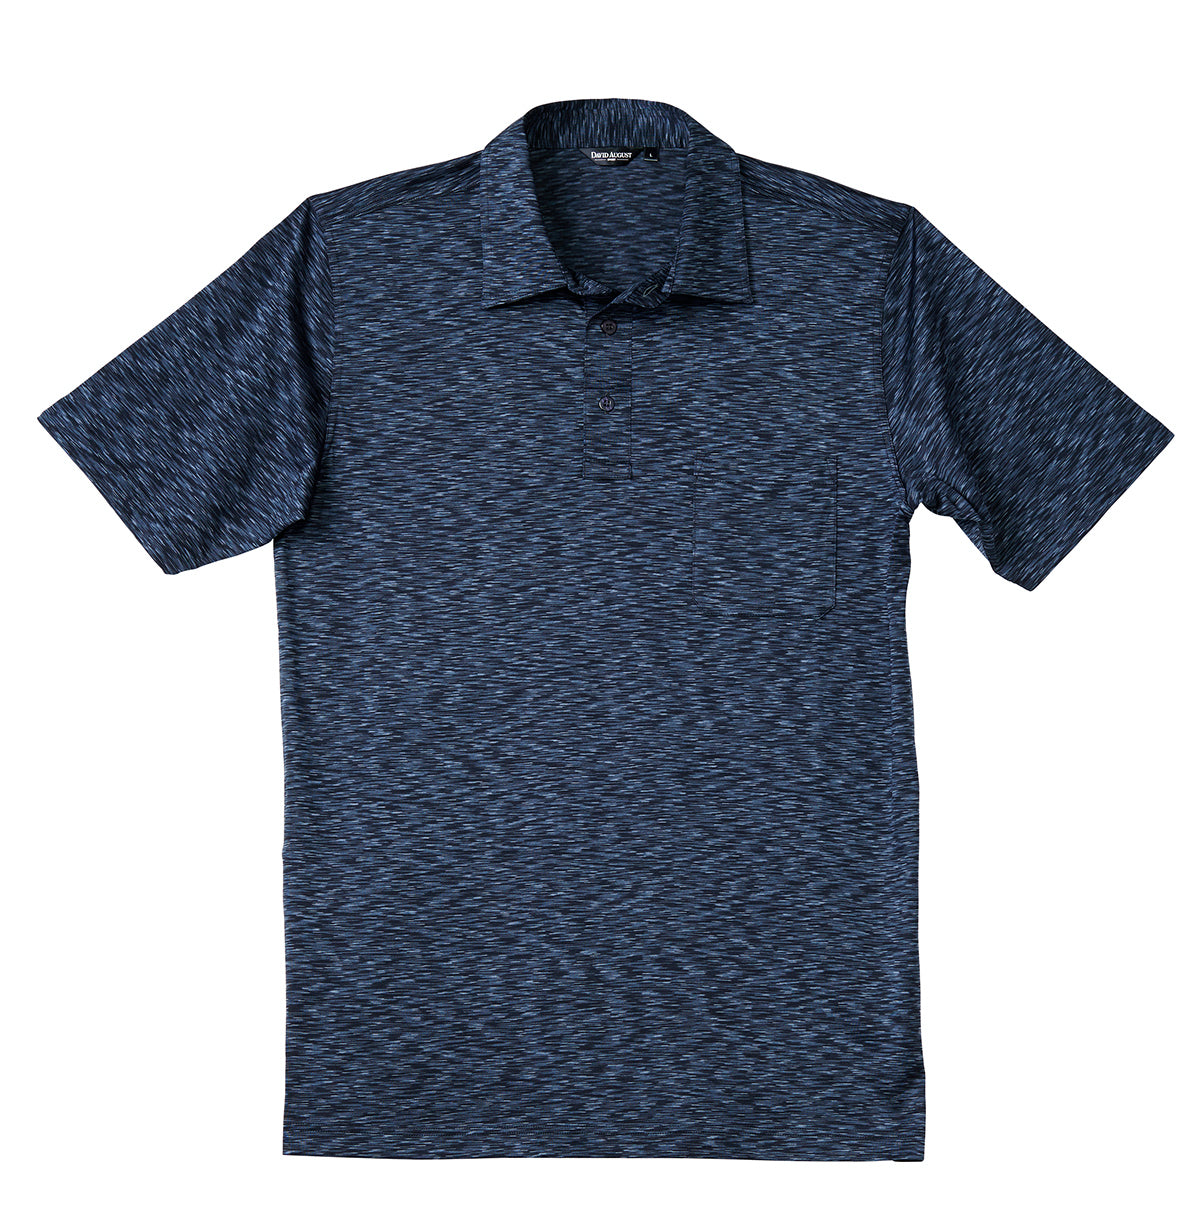 Luxury Mercerized Cotton Polo in Mosaic Heather Navy